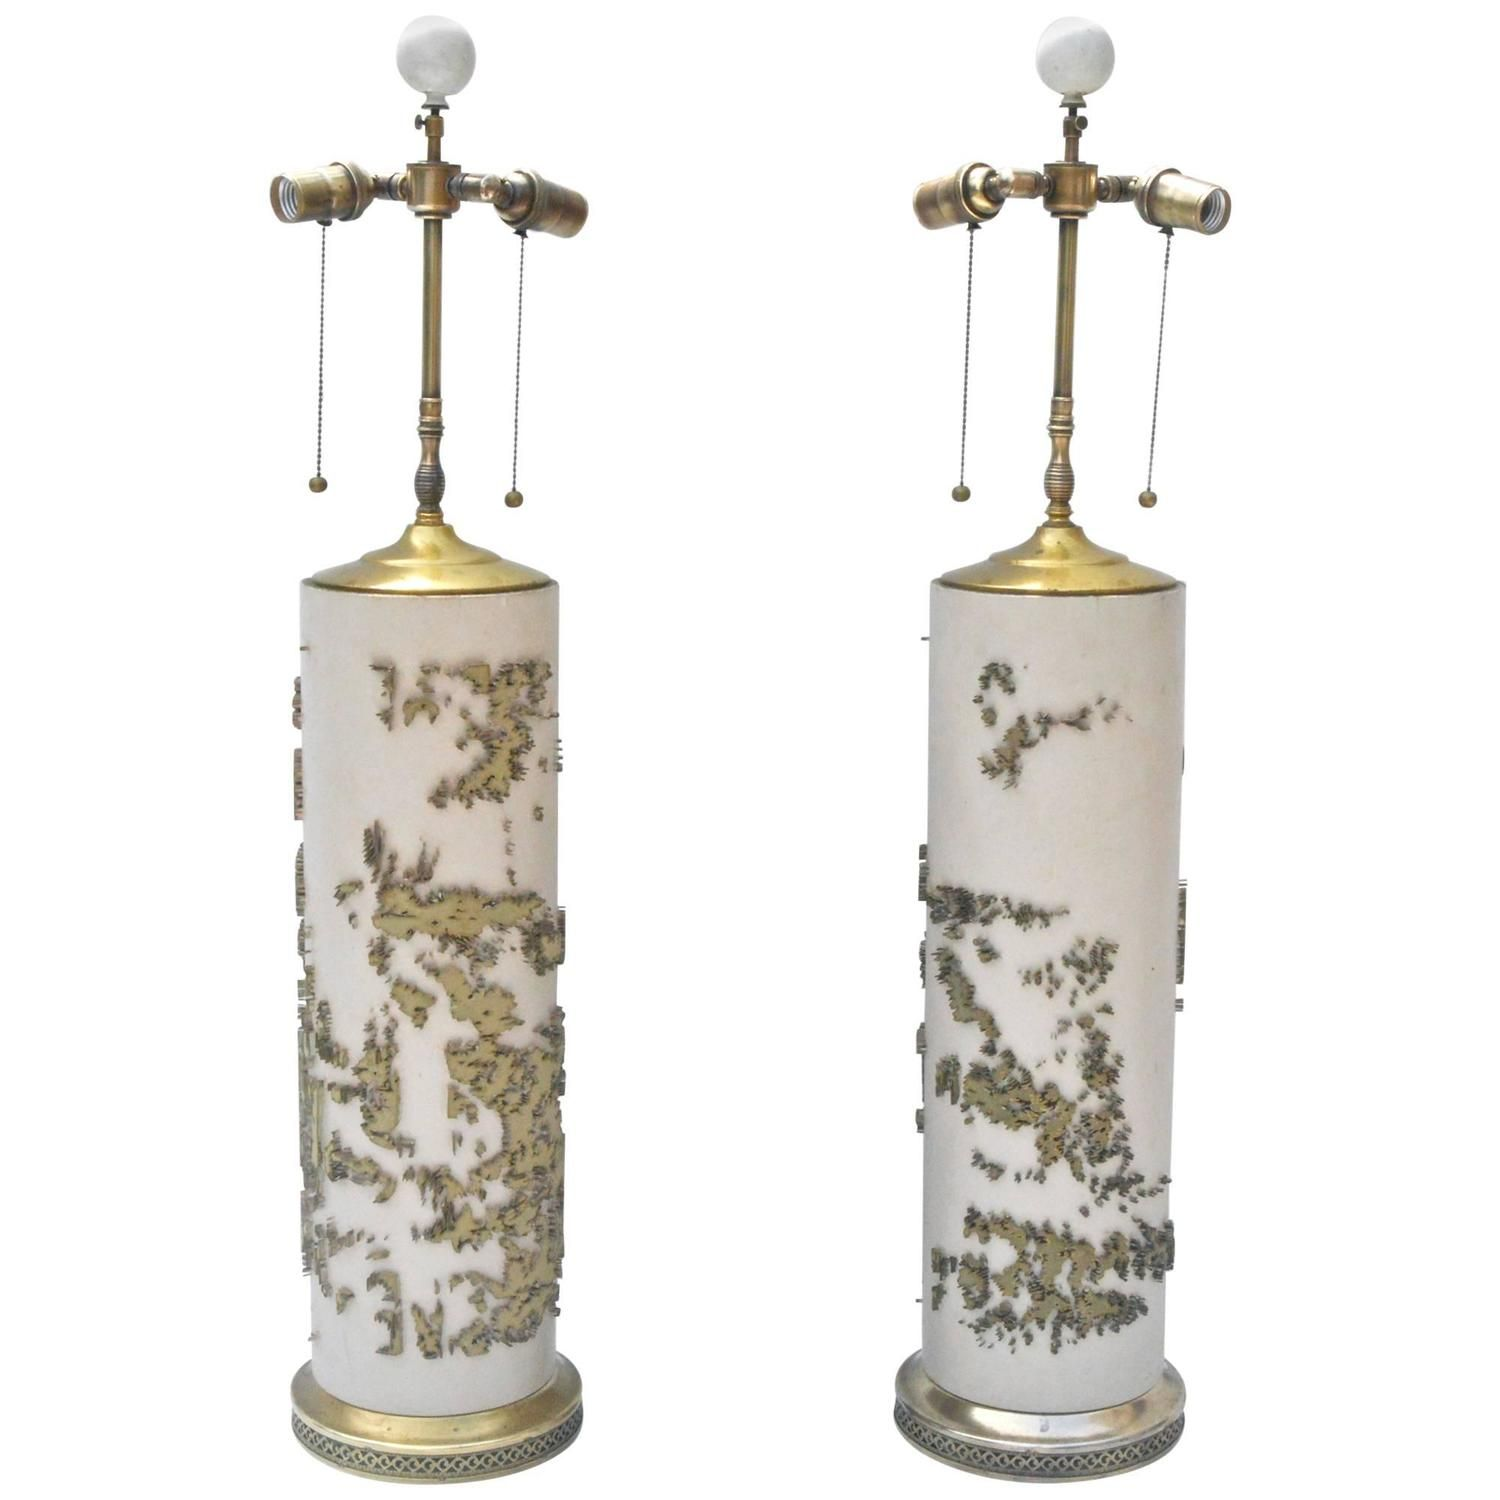 Epic Wallpaper Roller Lamps | From a unique collection of antique and modern table lamps at https://www.1stdibs.com/furniture/lighting/table-lamps/